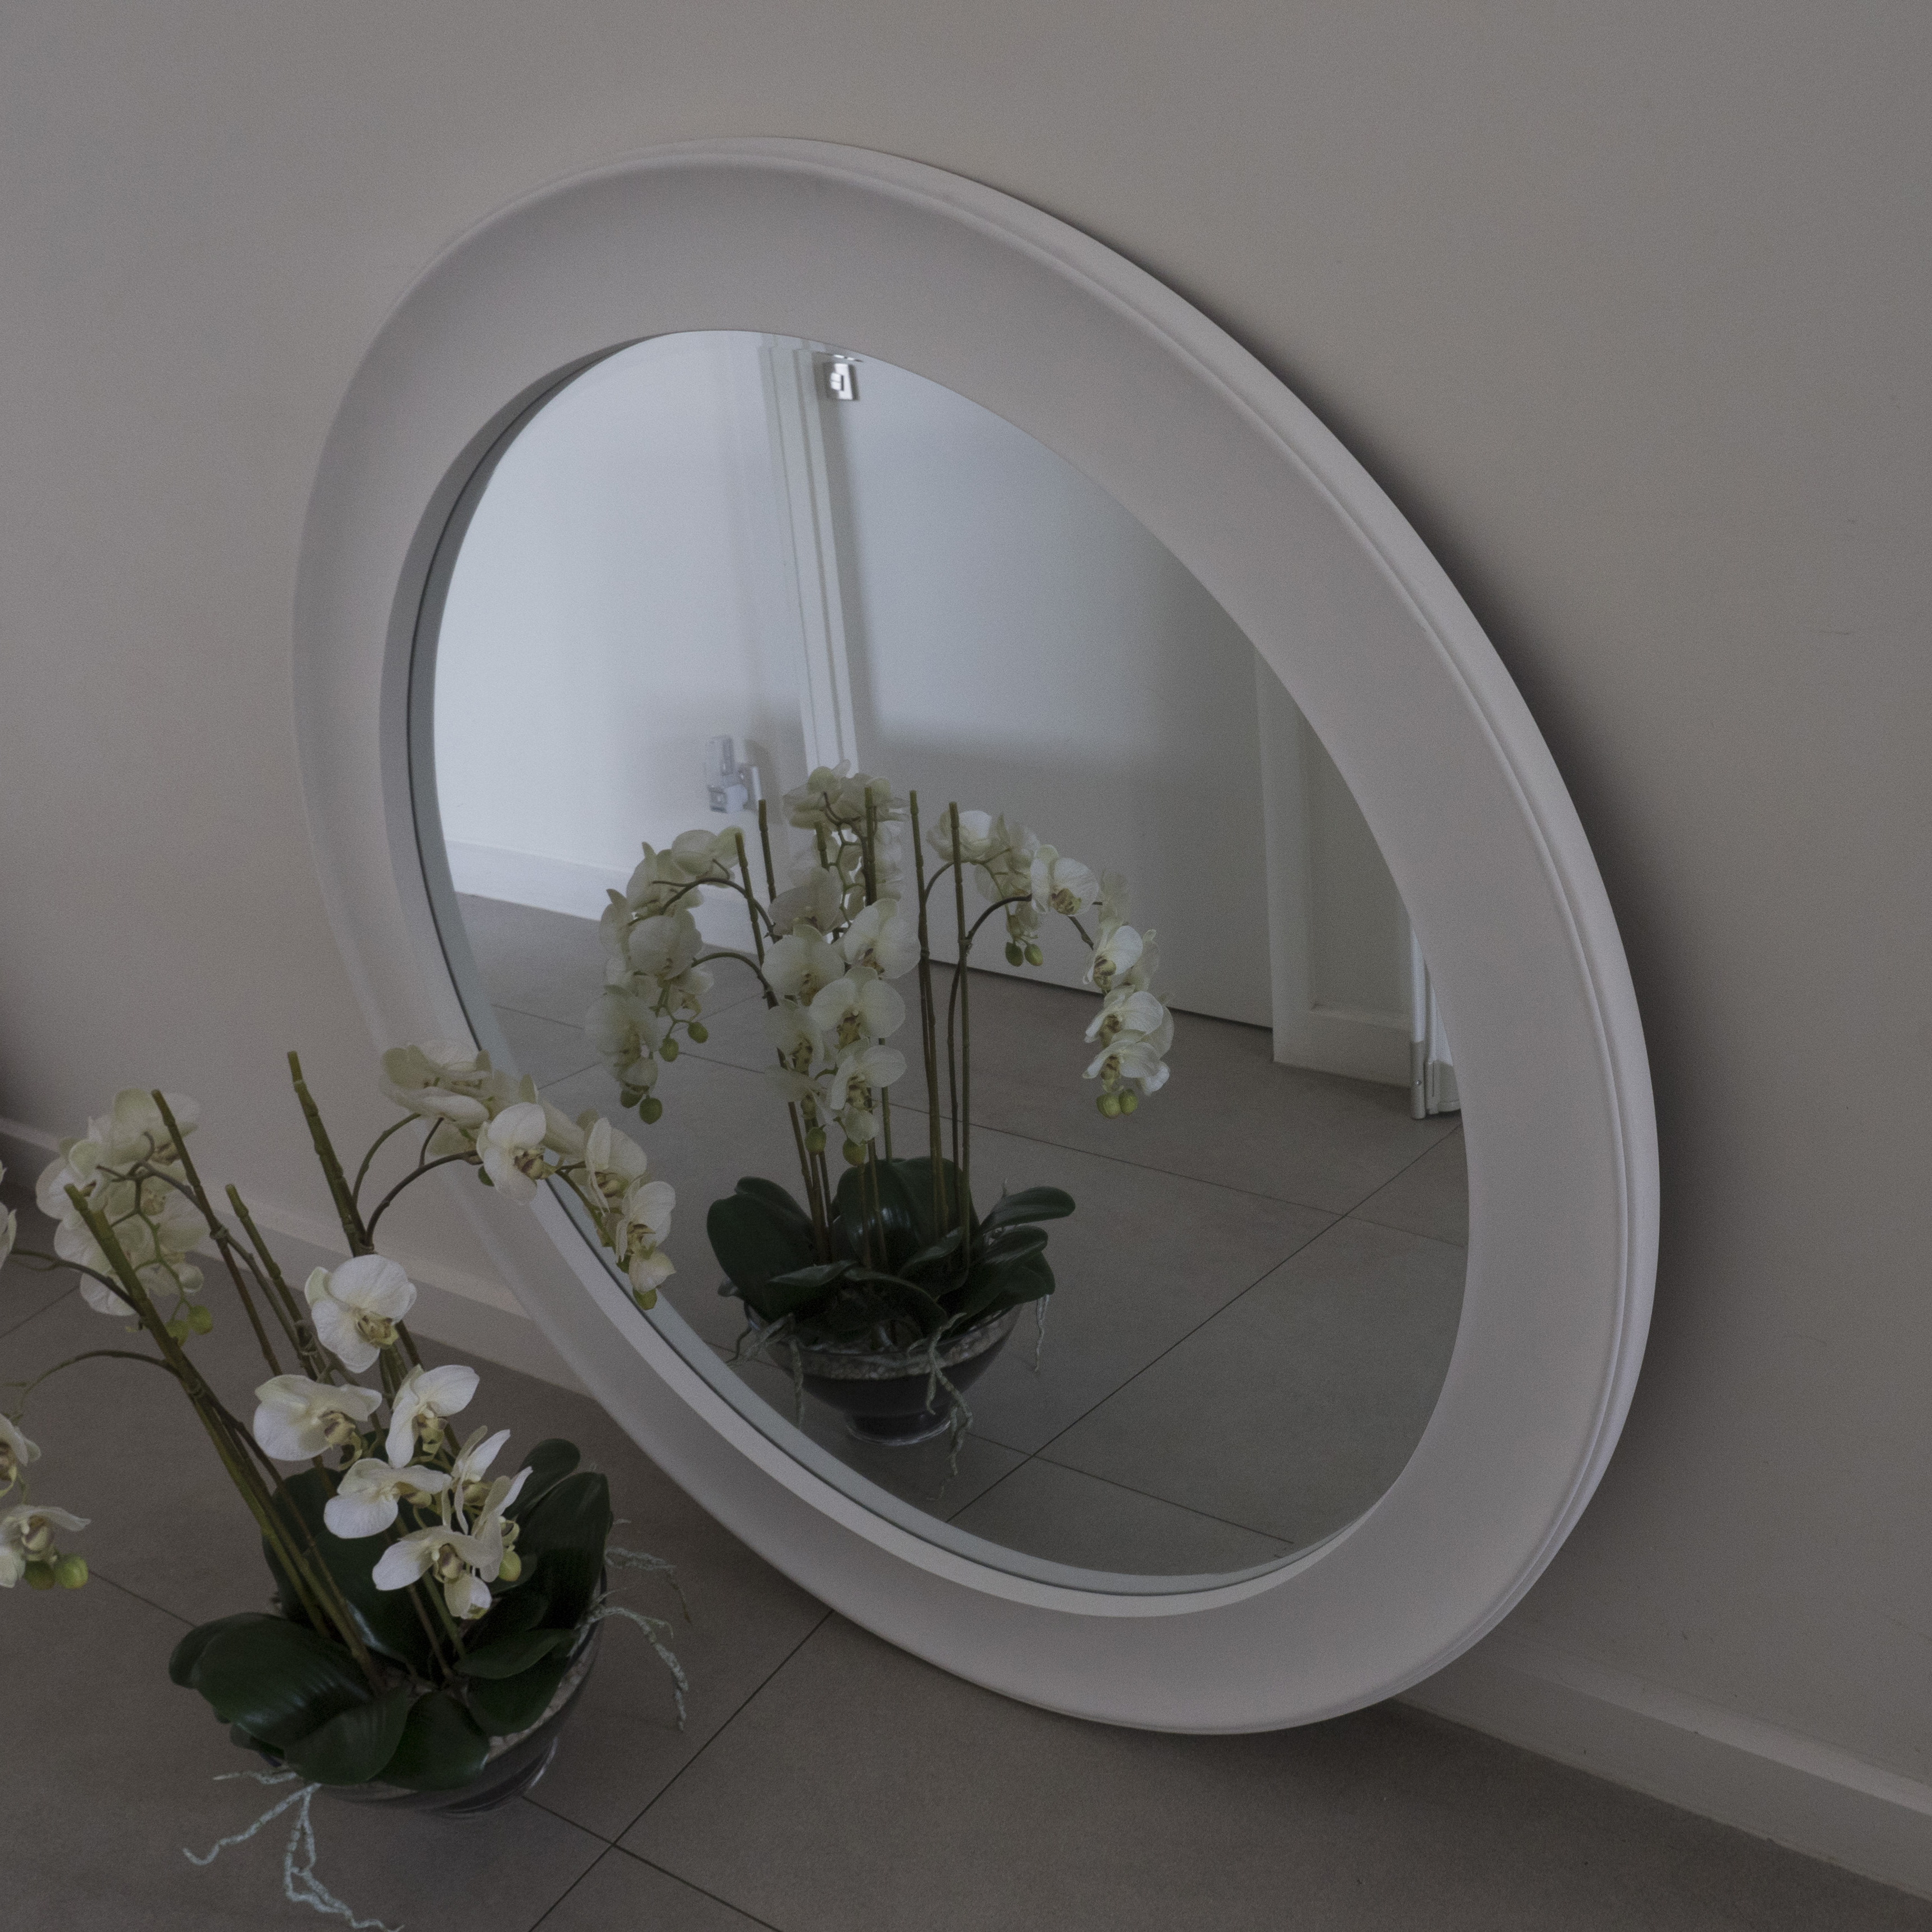 Round White Wall Mirrors Inside Fashionable Large Round White Mirror 1.2 Metres. It's Huge! On Sale $ (View 10 of 20)